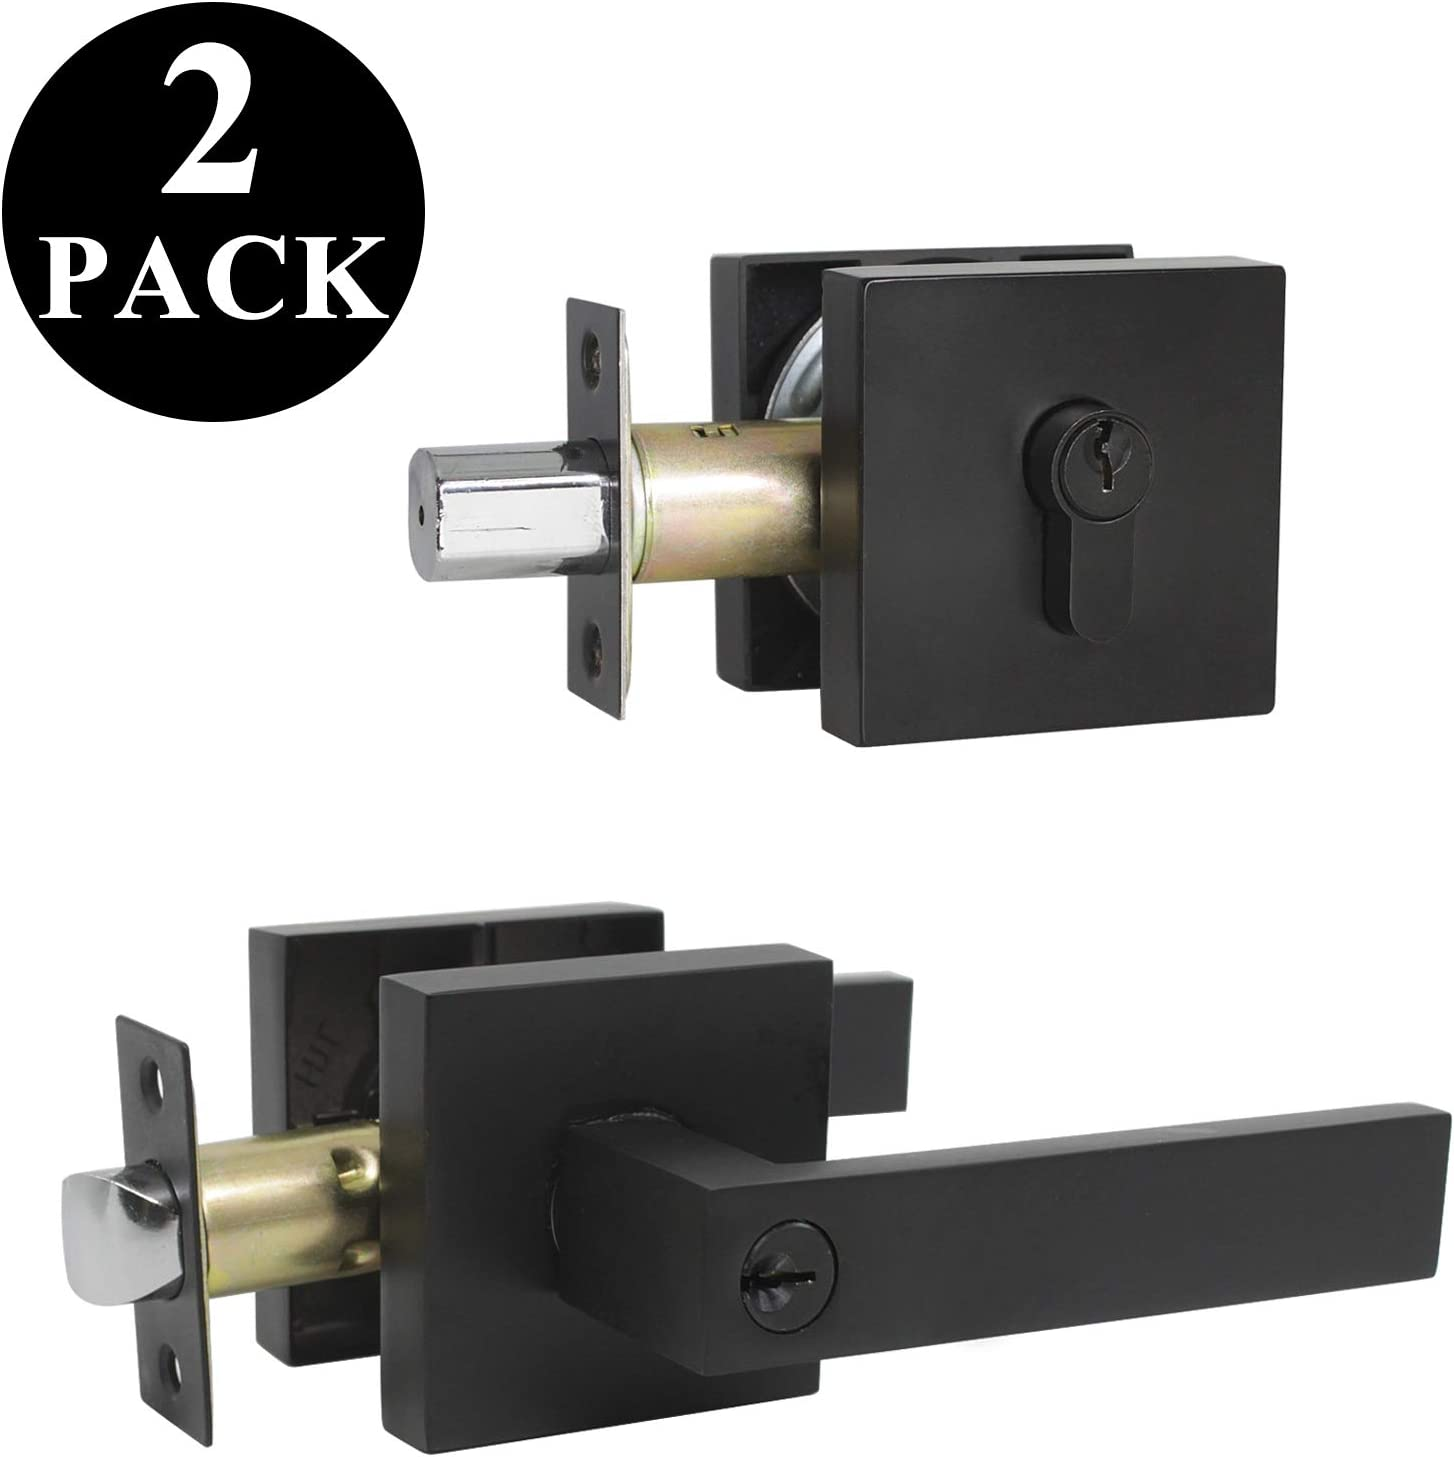 Heavy Duty Flat Black Entry Door Lockset for Right and Left Side for Office and Front Door 1 Pack Probrico Square Entrance Lever with Single Cylinder Deadbolt Set Keyed Alike Combo Pack